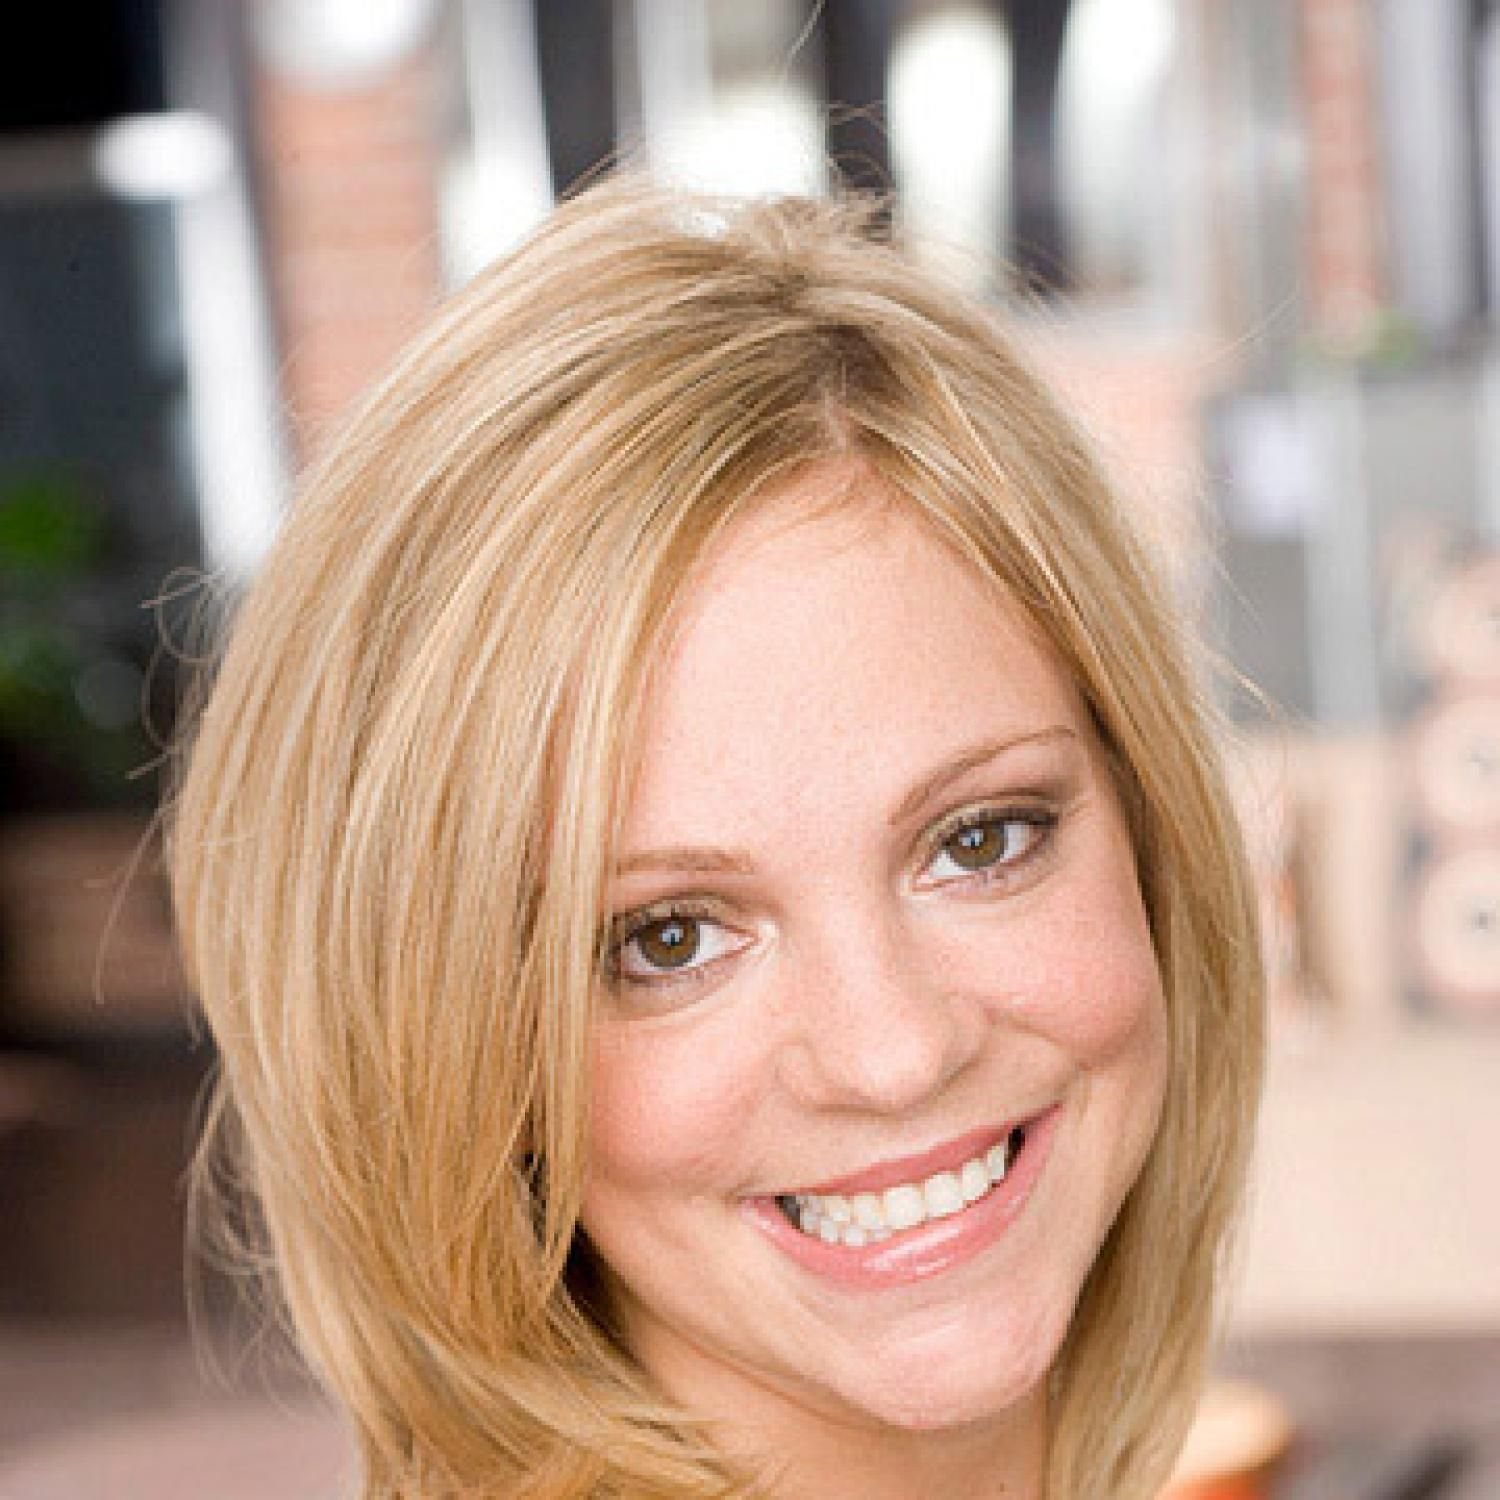 Hairstyles and haircuts for mediumlength hair shoulder length